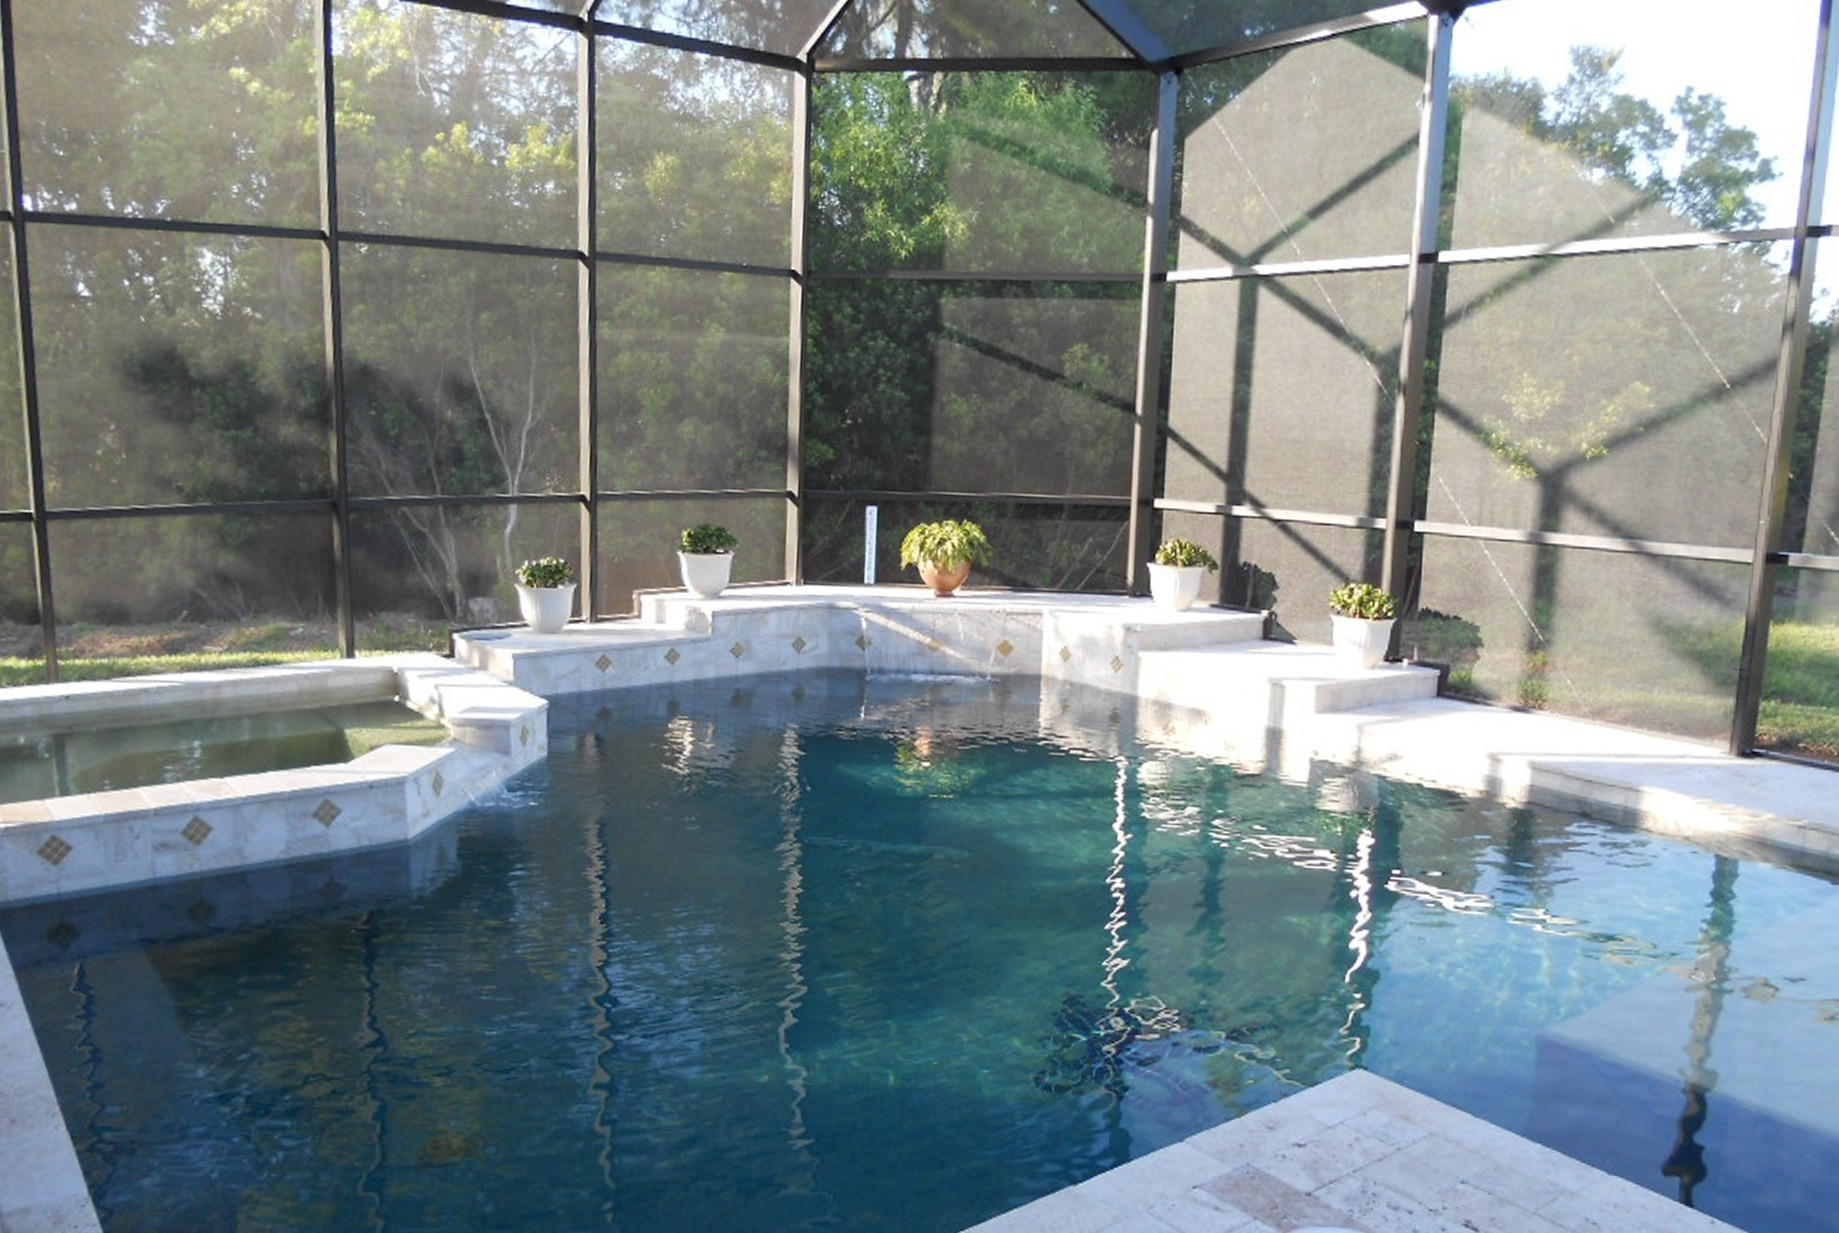 Best ideas about Cost To Put In An Inground Pool . Save or Pin Average Cost of Inground Saltwater Pool Now.